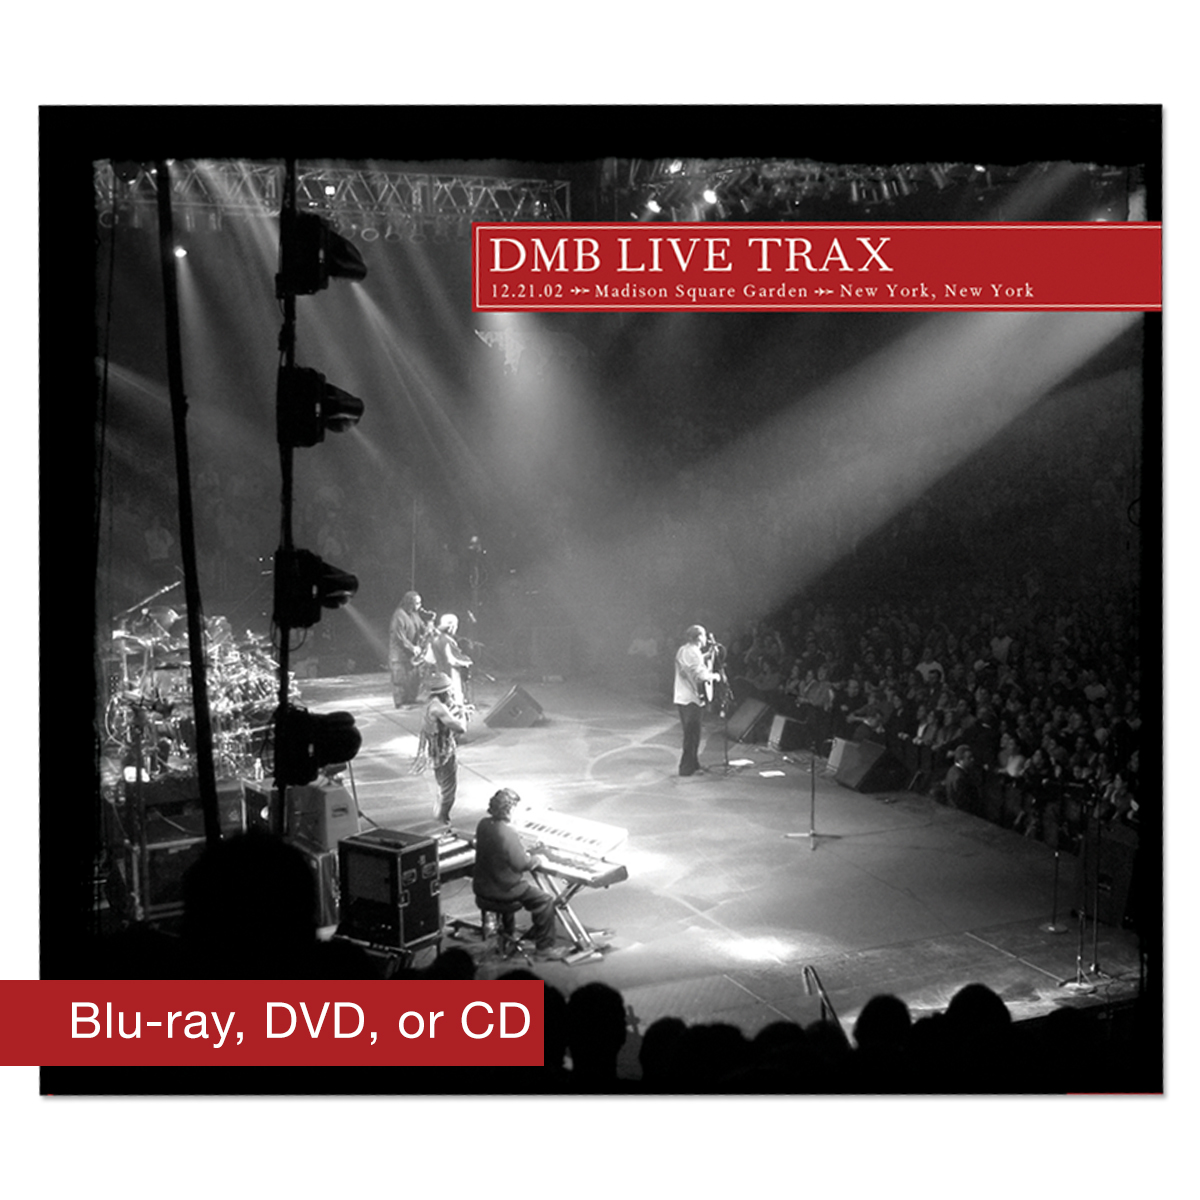 Live Trax Vol. 40: Madison Square Garden<br />Blu-ray, DVD or CD